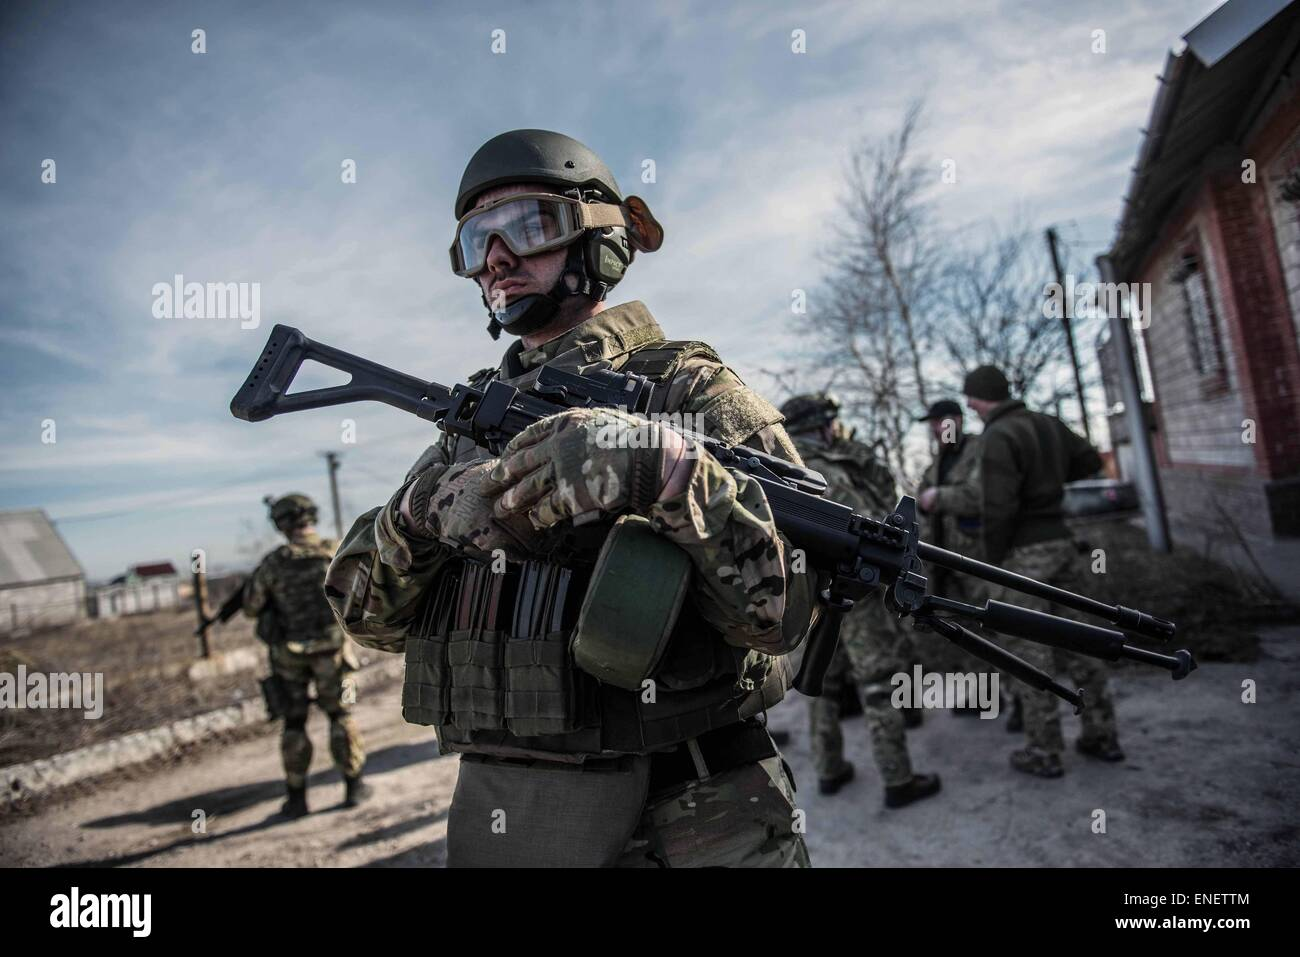 A fighter from the azov battalion stands near the front line in Eastern Ukraine. - Stock Image